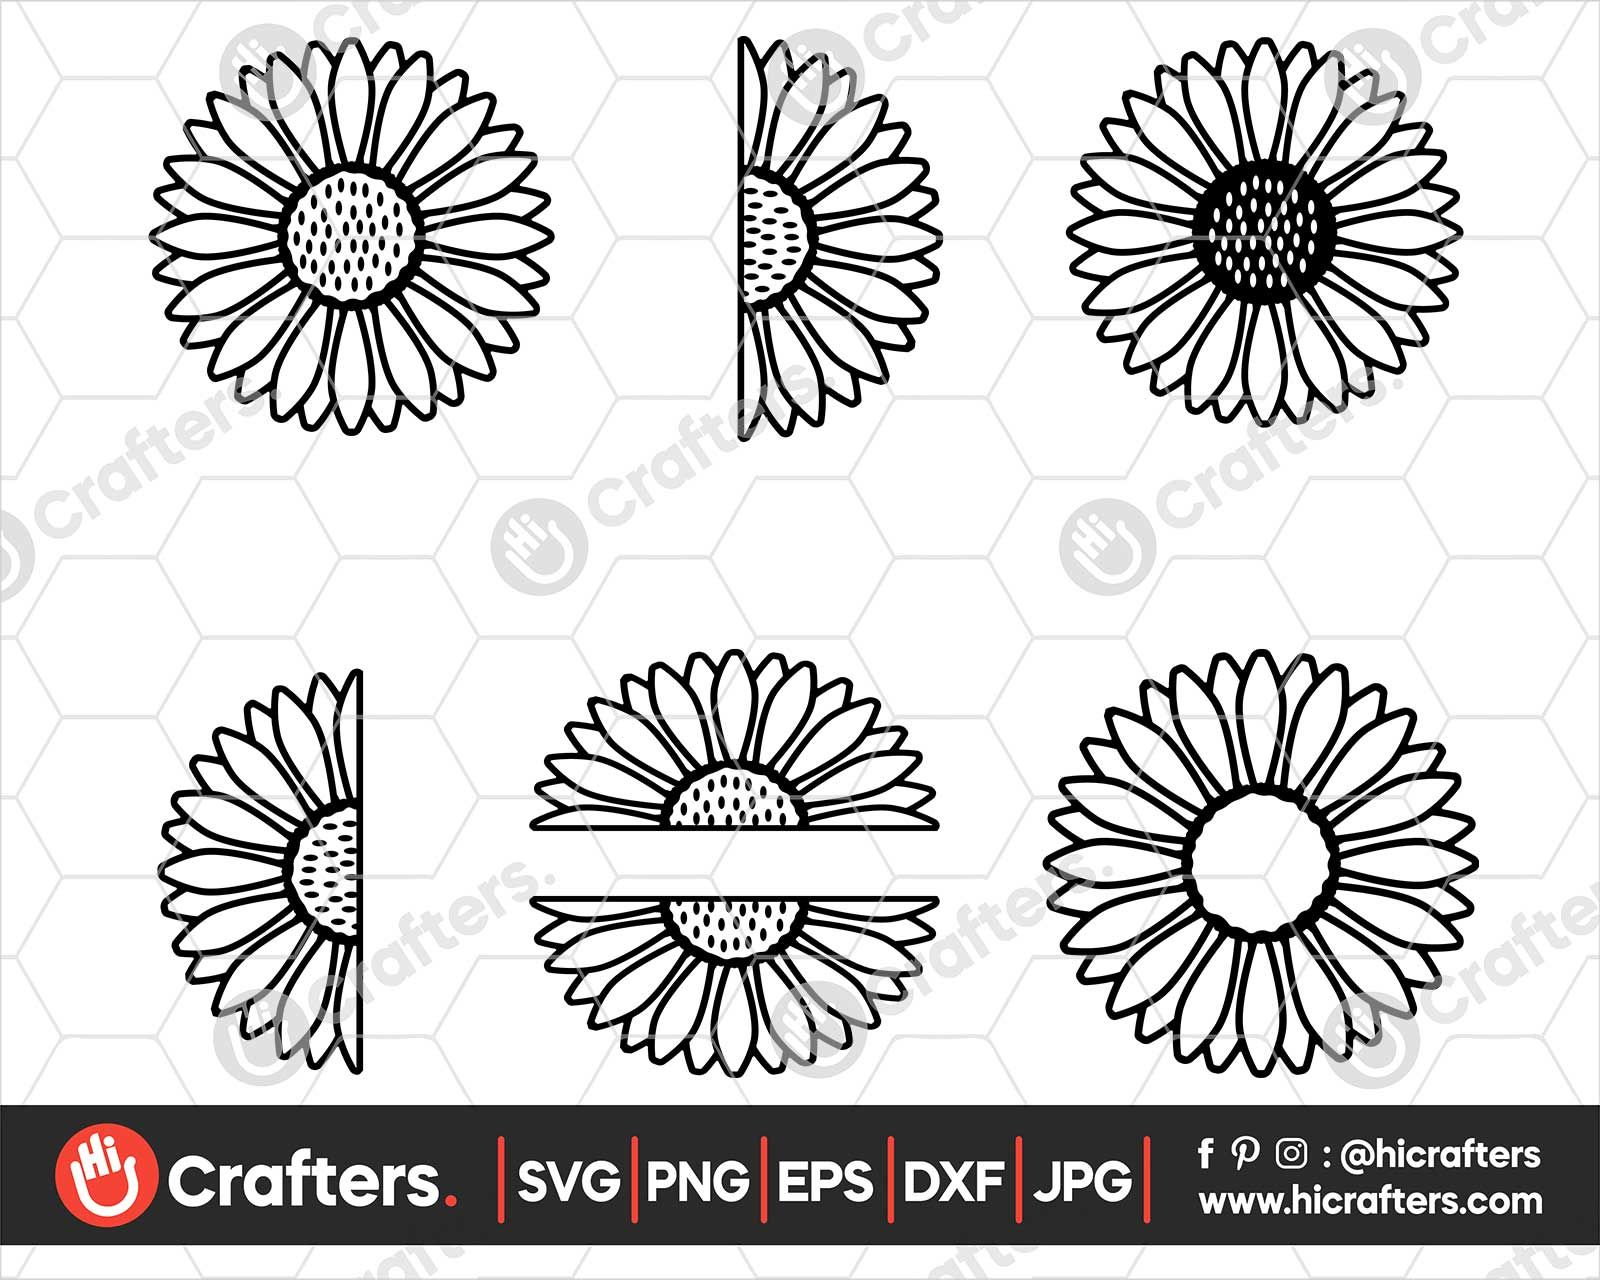 Sunflower SVG, Sunflower Monogram SVG in 2020 (With images